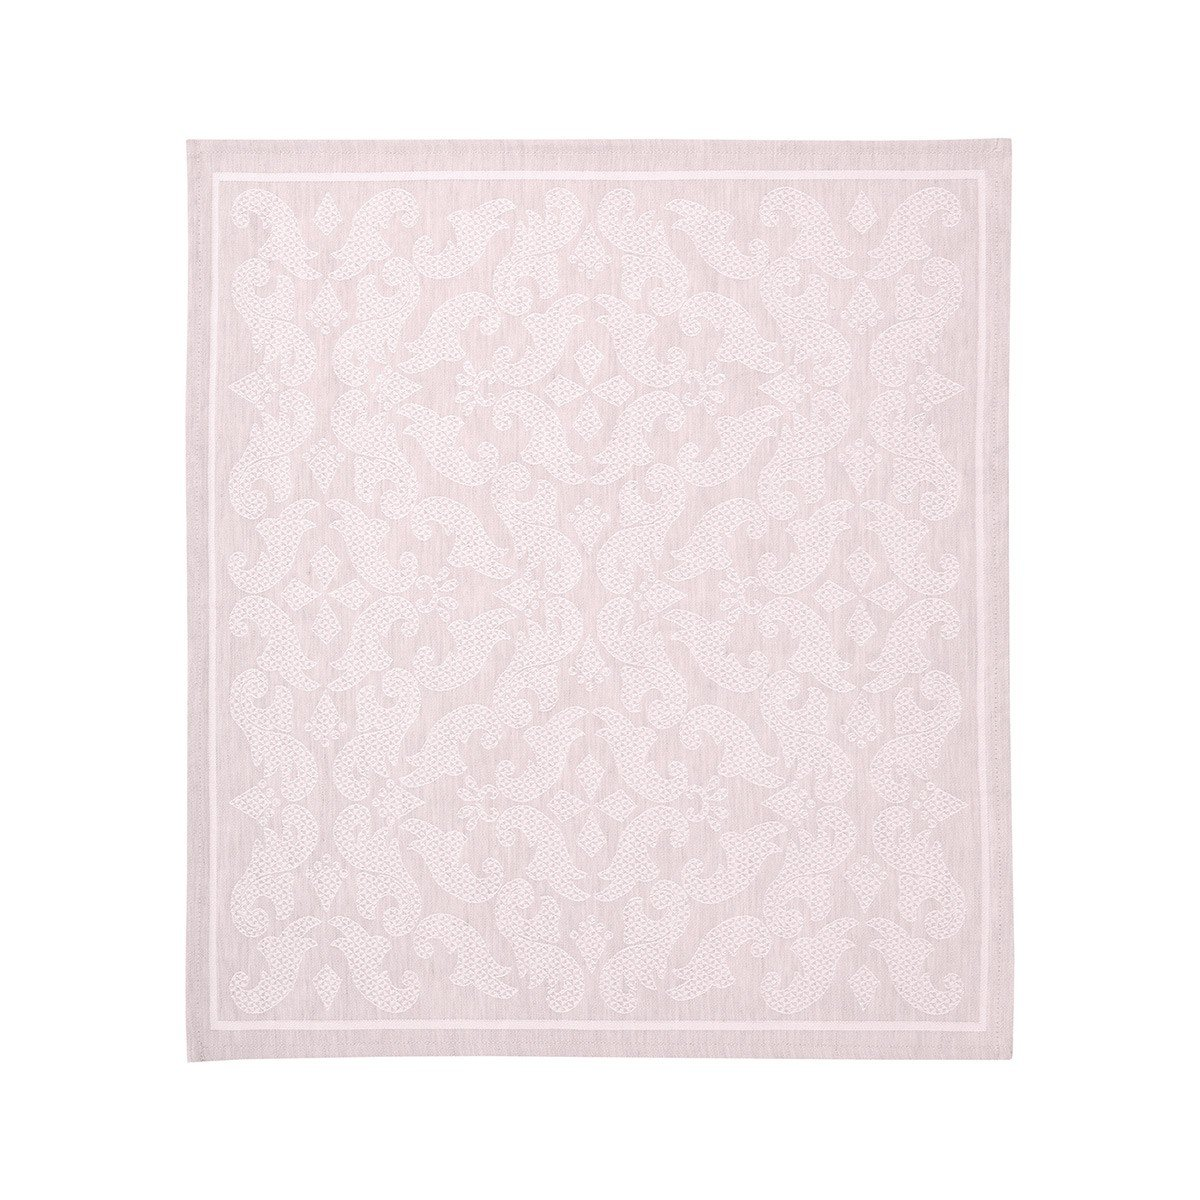 Tullia Poudre Table Linen Yves Delorme Fig Linens Pink Napkin